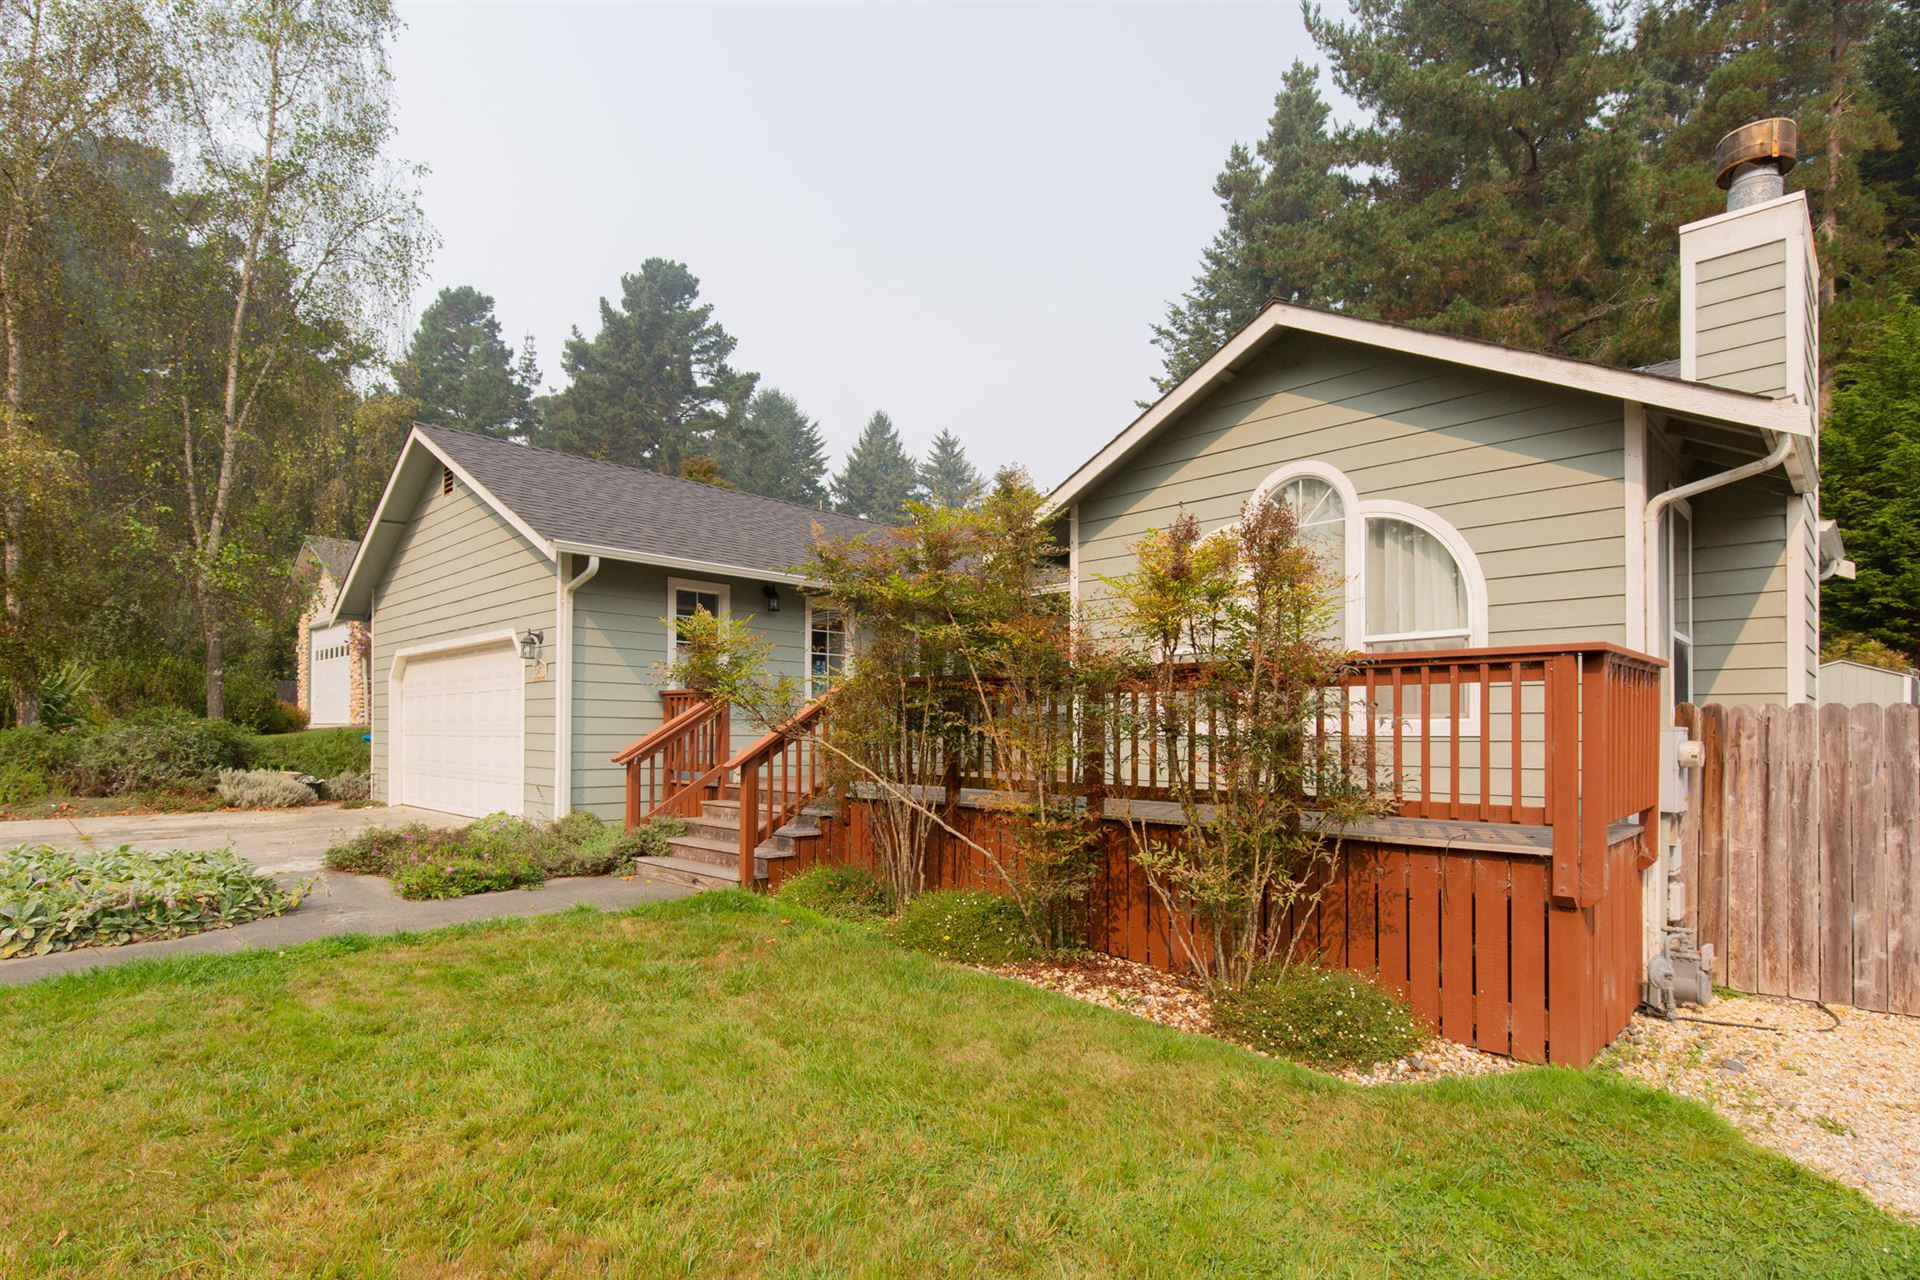 7008 London Drive, Eureka, CA 95503 - MLS#: 257544